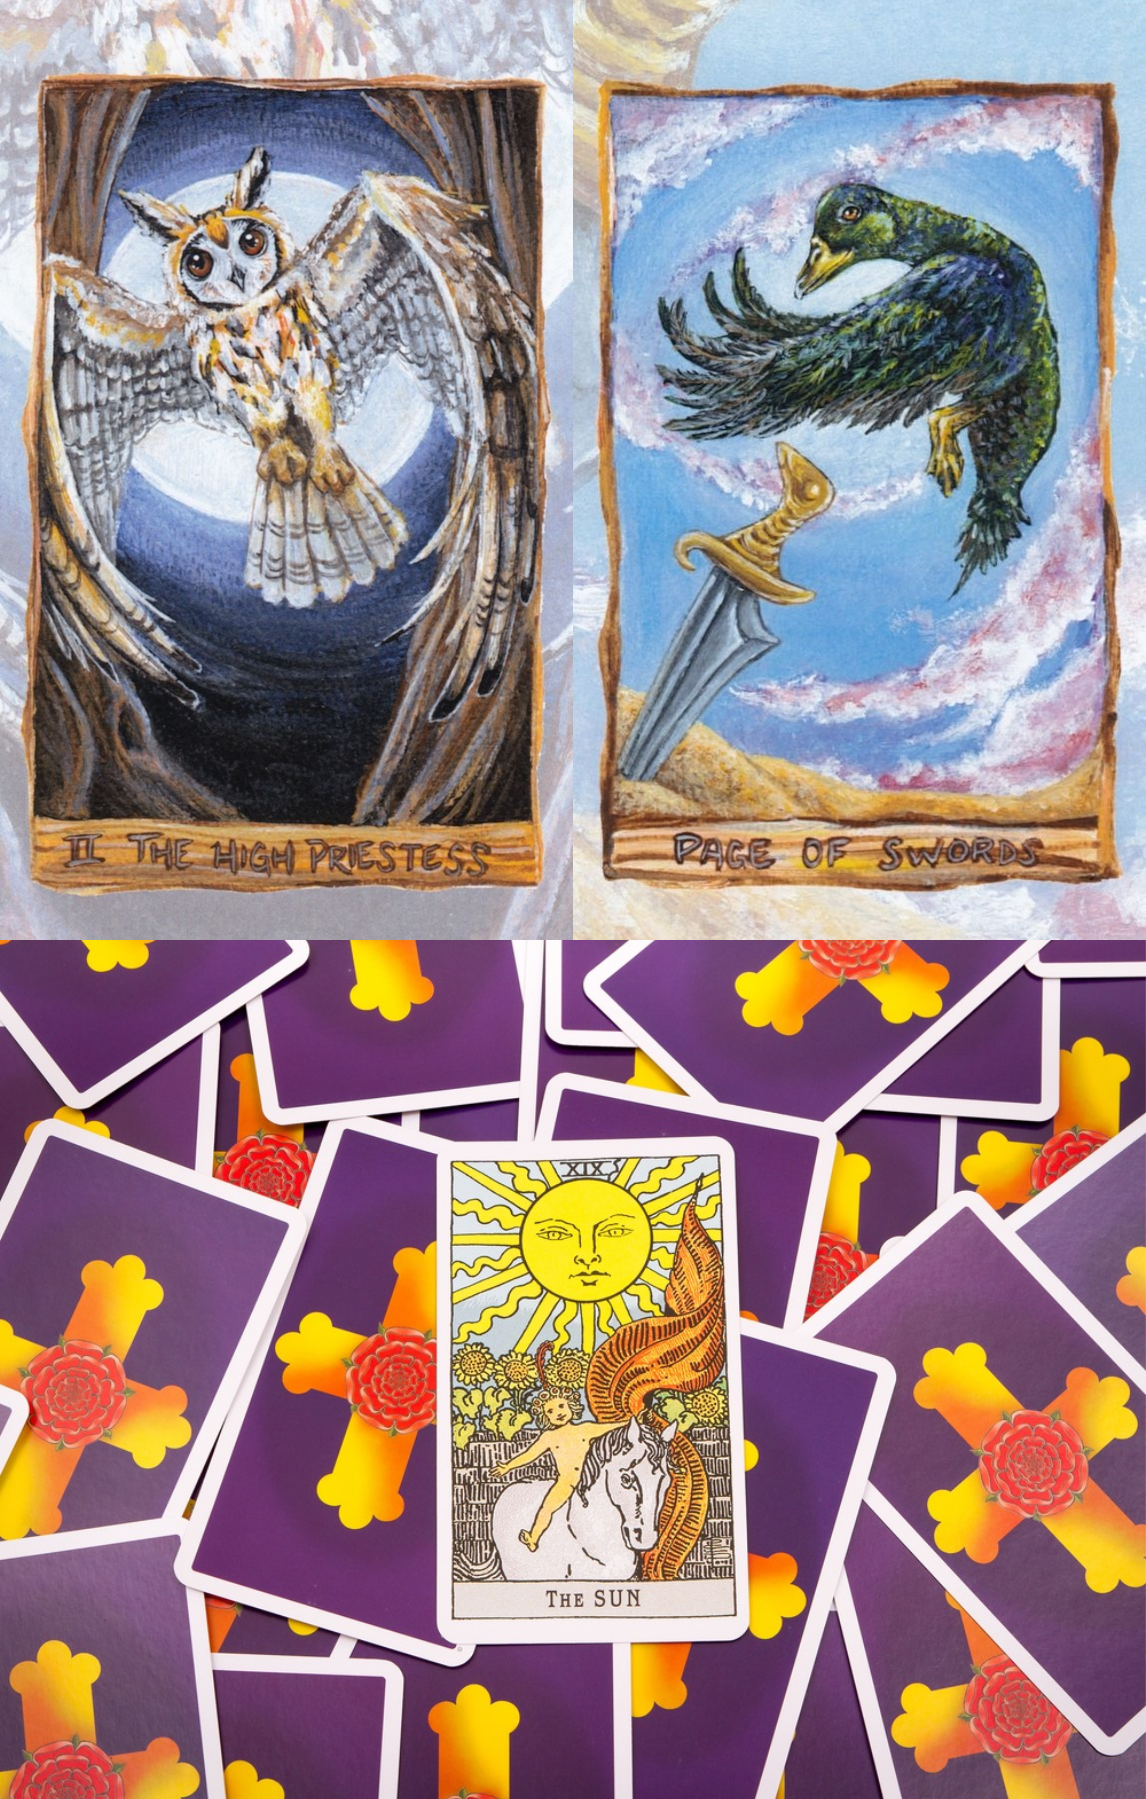 How To Read Tarot Cards Free Card Reading And Tarot Card Reading Love In Hindi Free Clairvoyant Re Reading Tarot Cards Free Card Reading Learning Tarot Cards